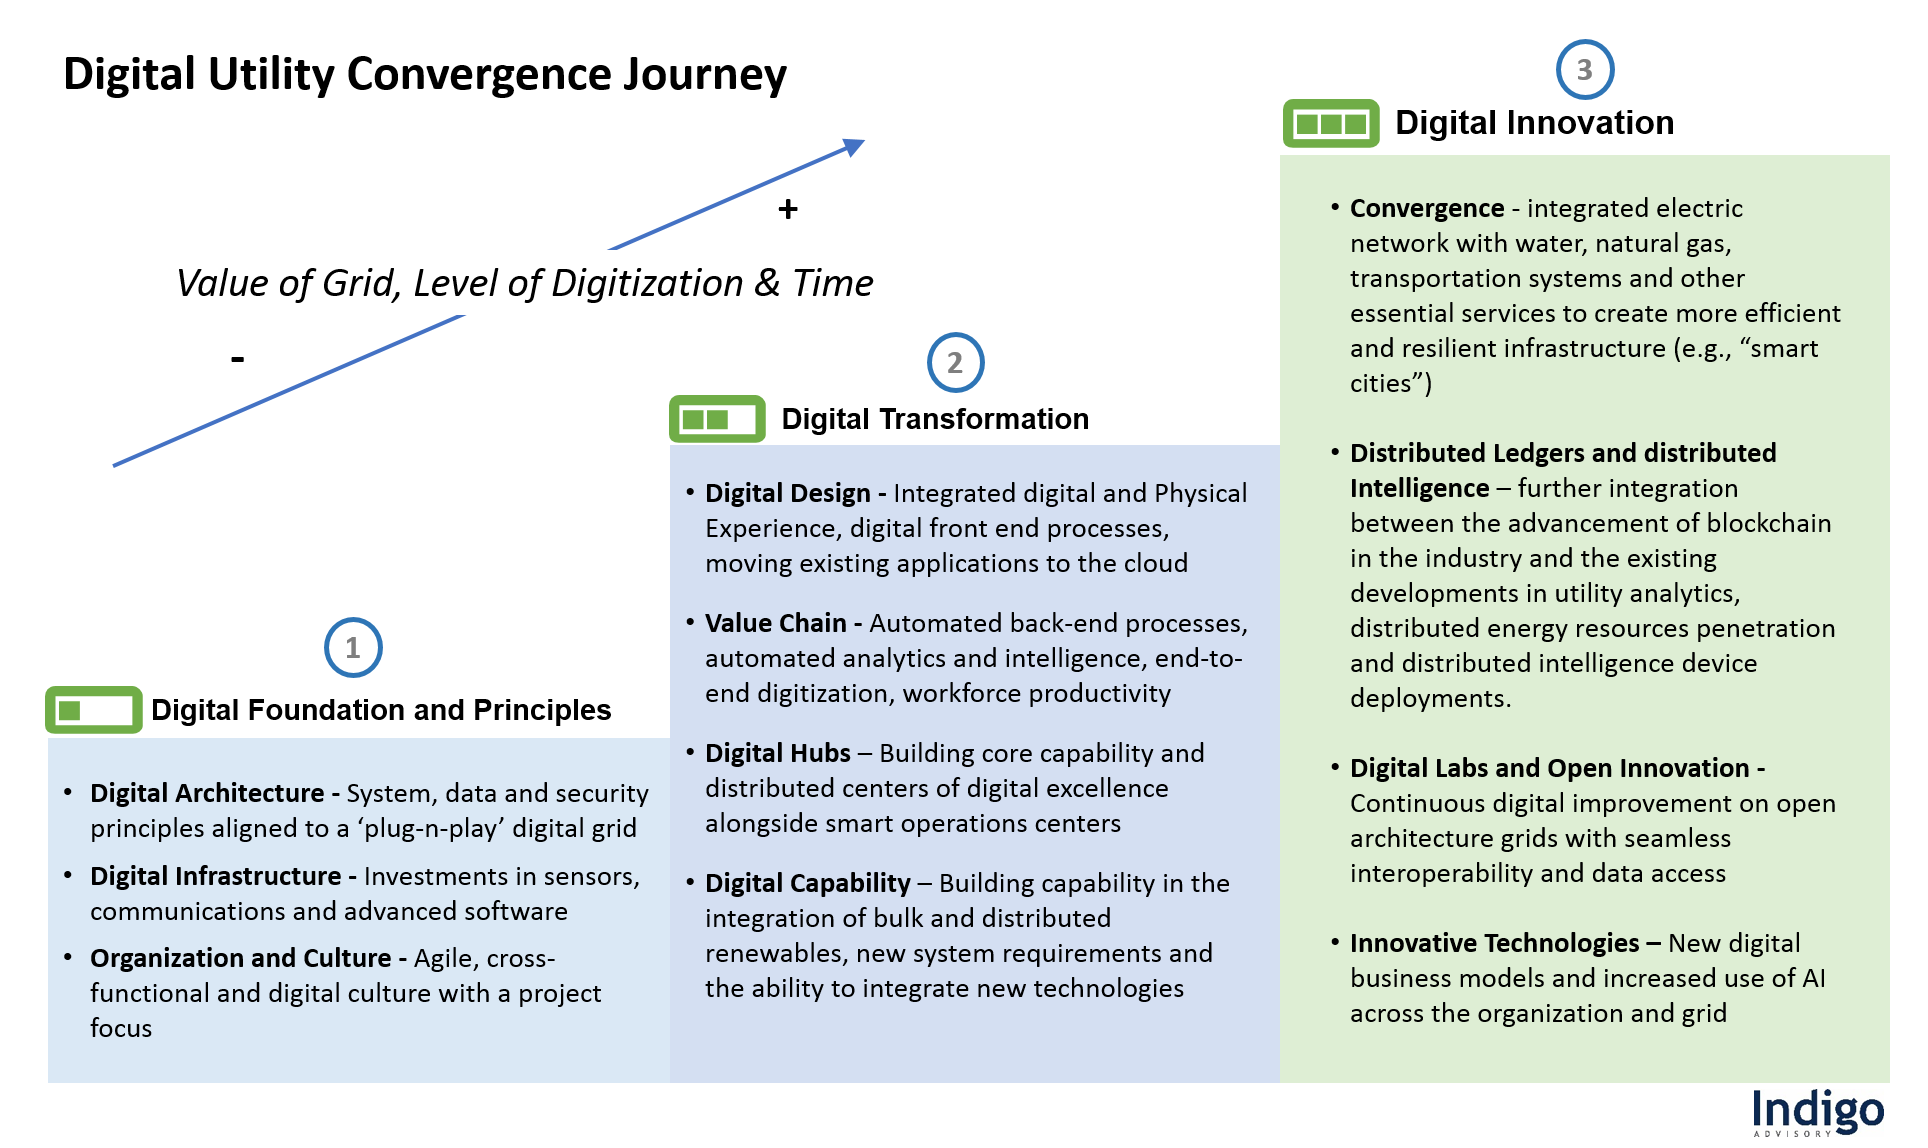 Digital Utility Convergence Journey